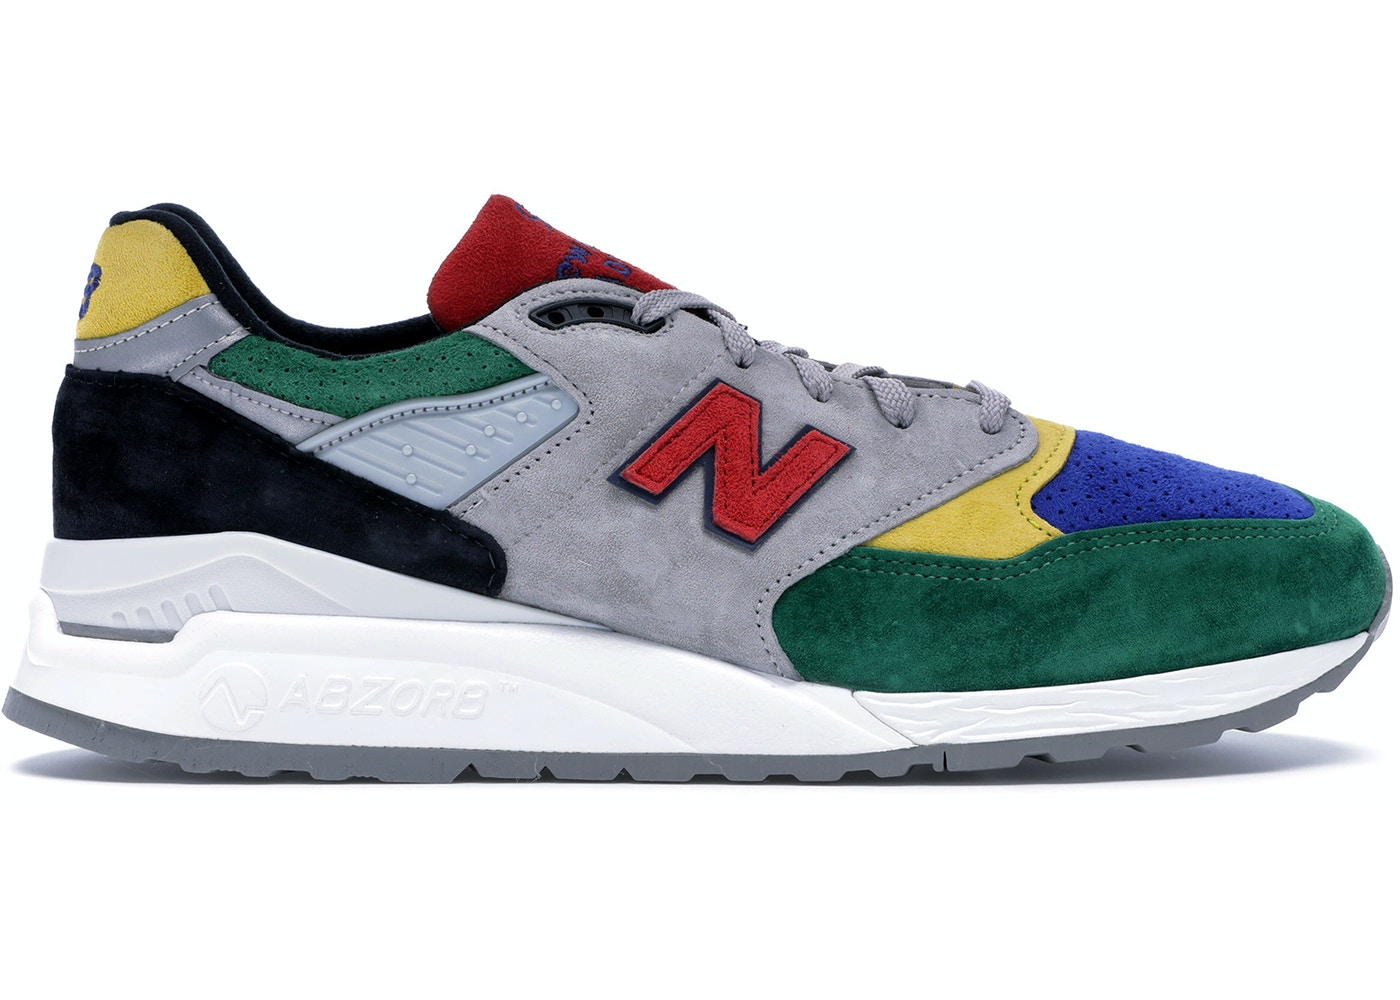 new arrival 8d964 498f1 New Balance 998 Todd Snyder Color Spectrum